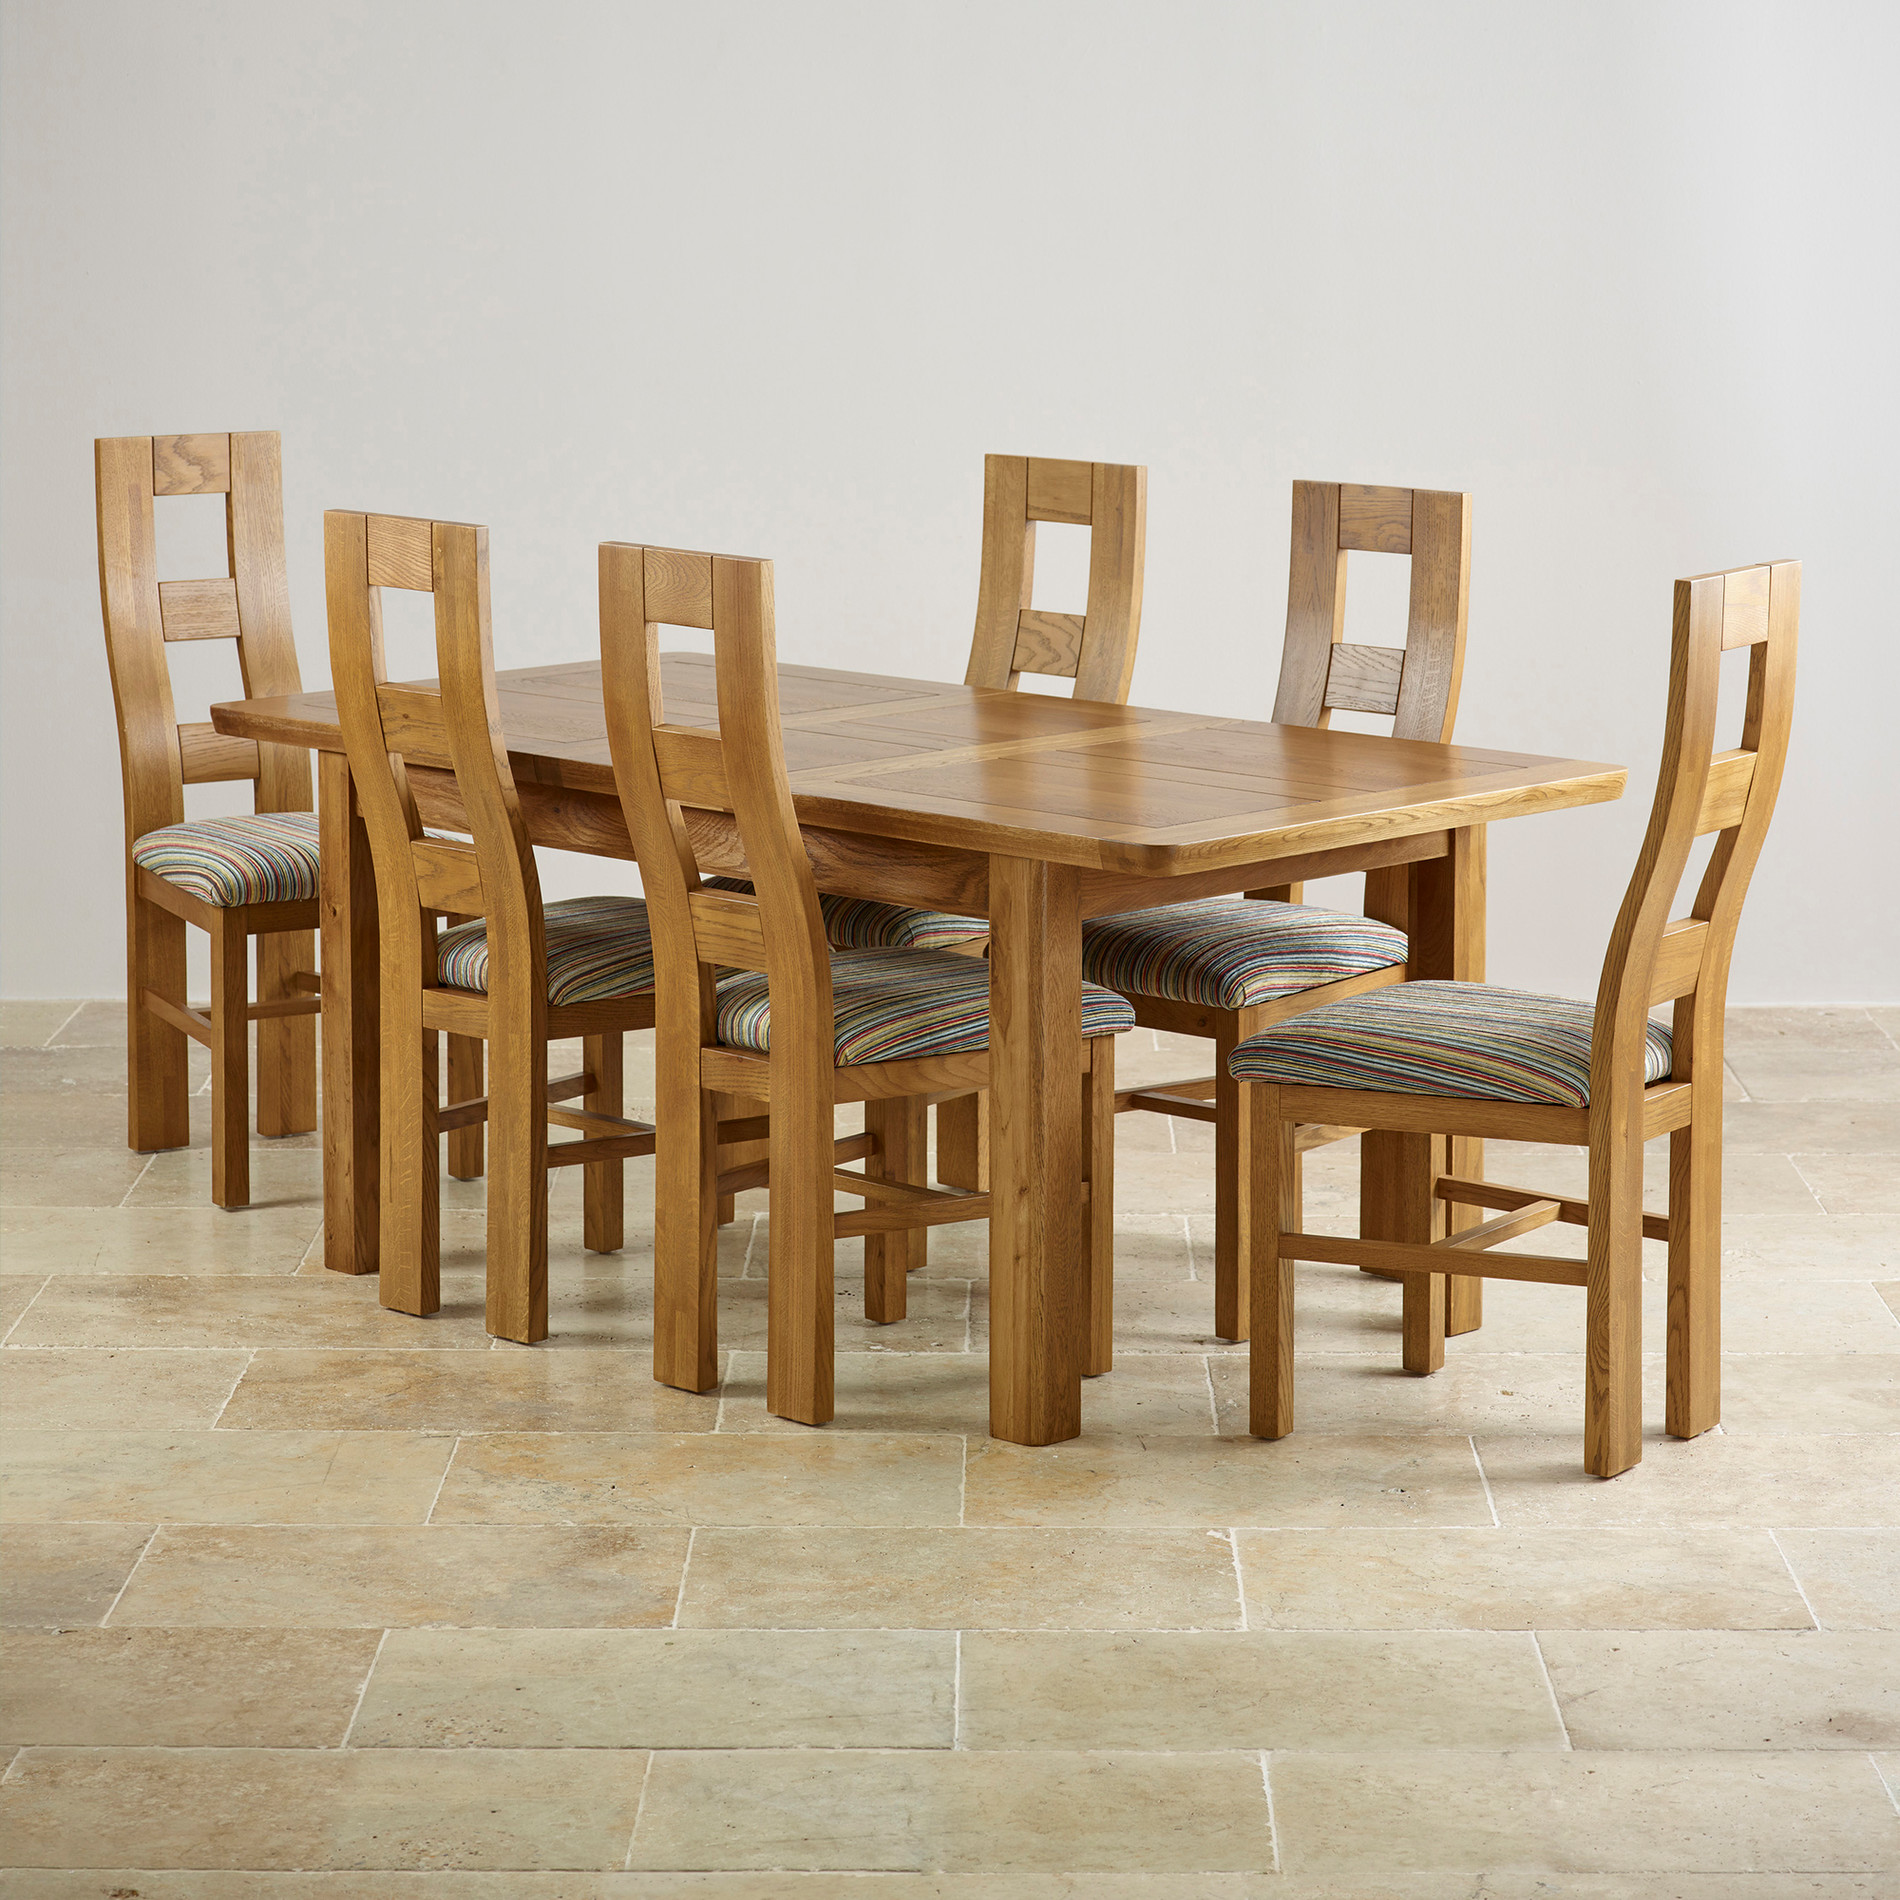 Dining Table And 6 Chairs Orrick Extending Dining Set In Rustic Oak Table 43 6 Beige